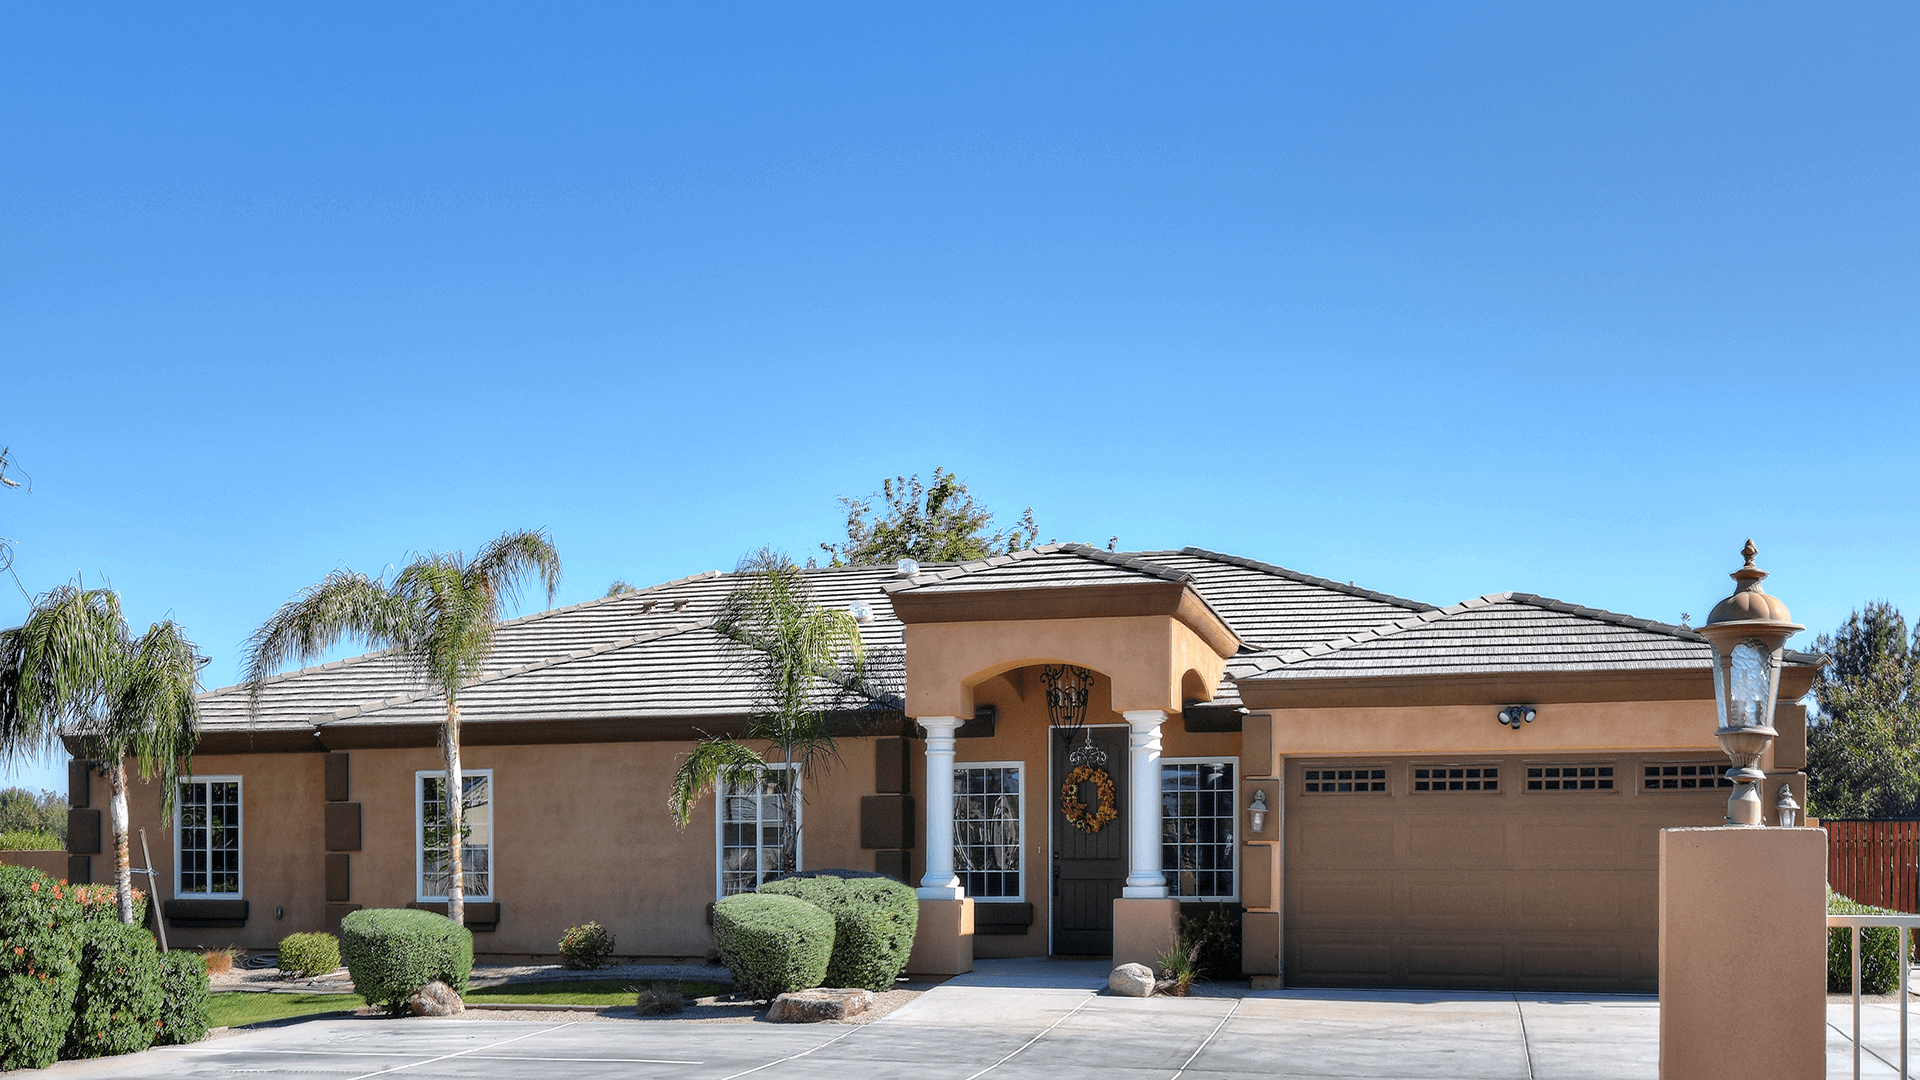 Eden Adult Care Facility home located in Gilbert Arizona, with locations in Mesa, Gilbert and the Phoenix East Valley